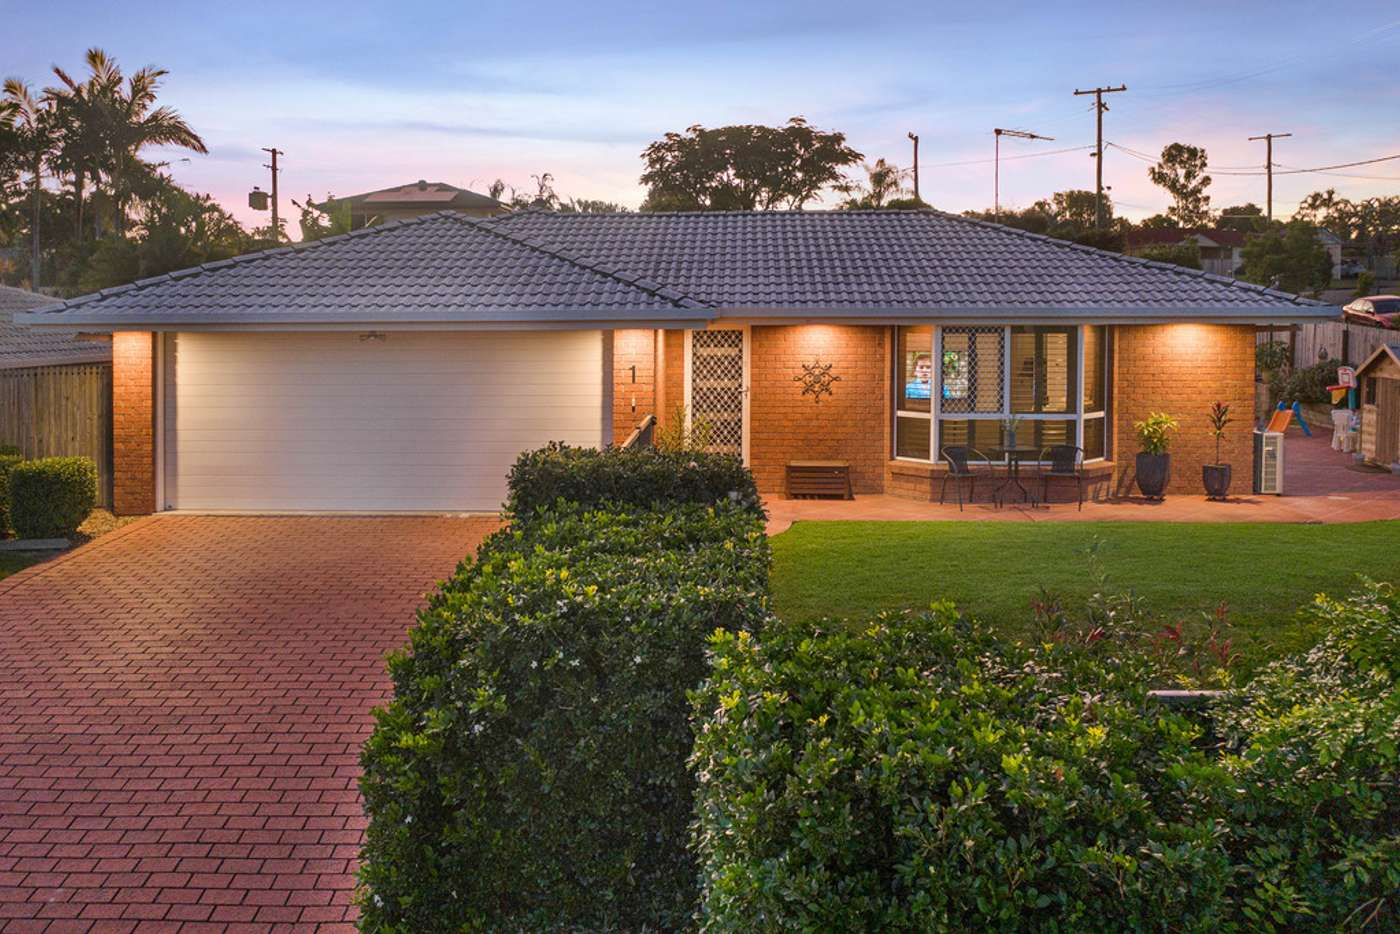 Main view of Homely house listing, 1 Olivia Court, Regents Park QLD 4118